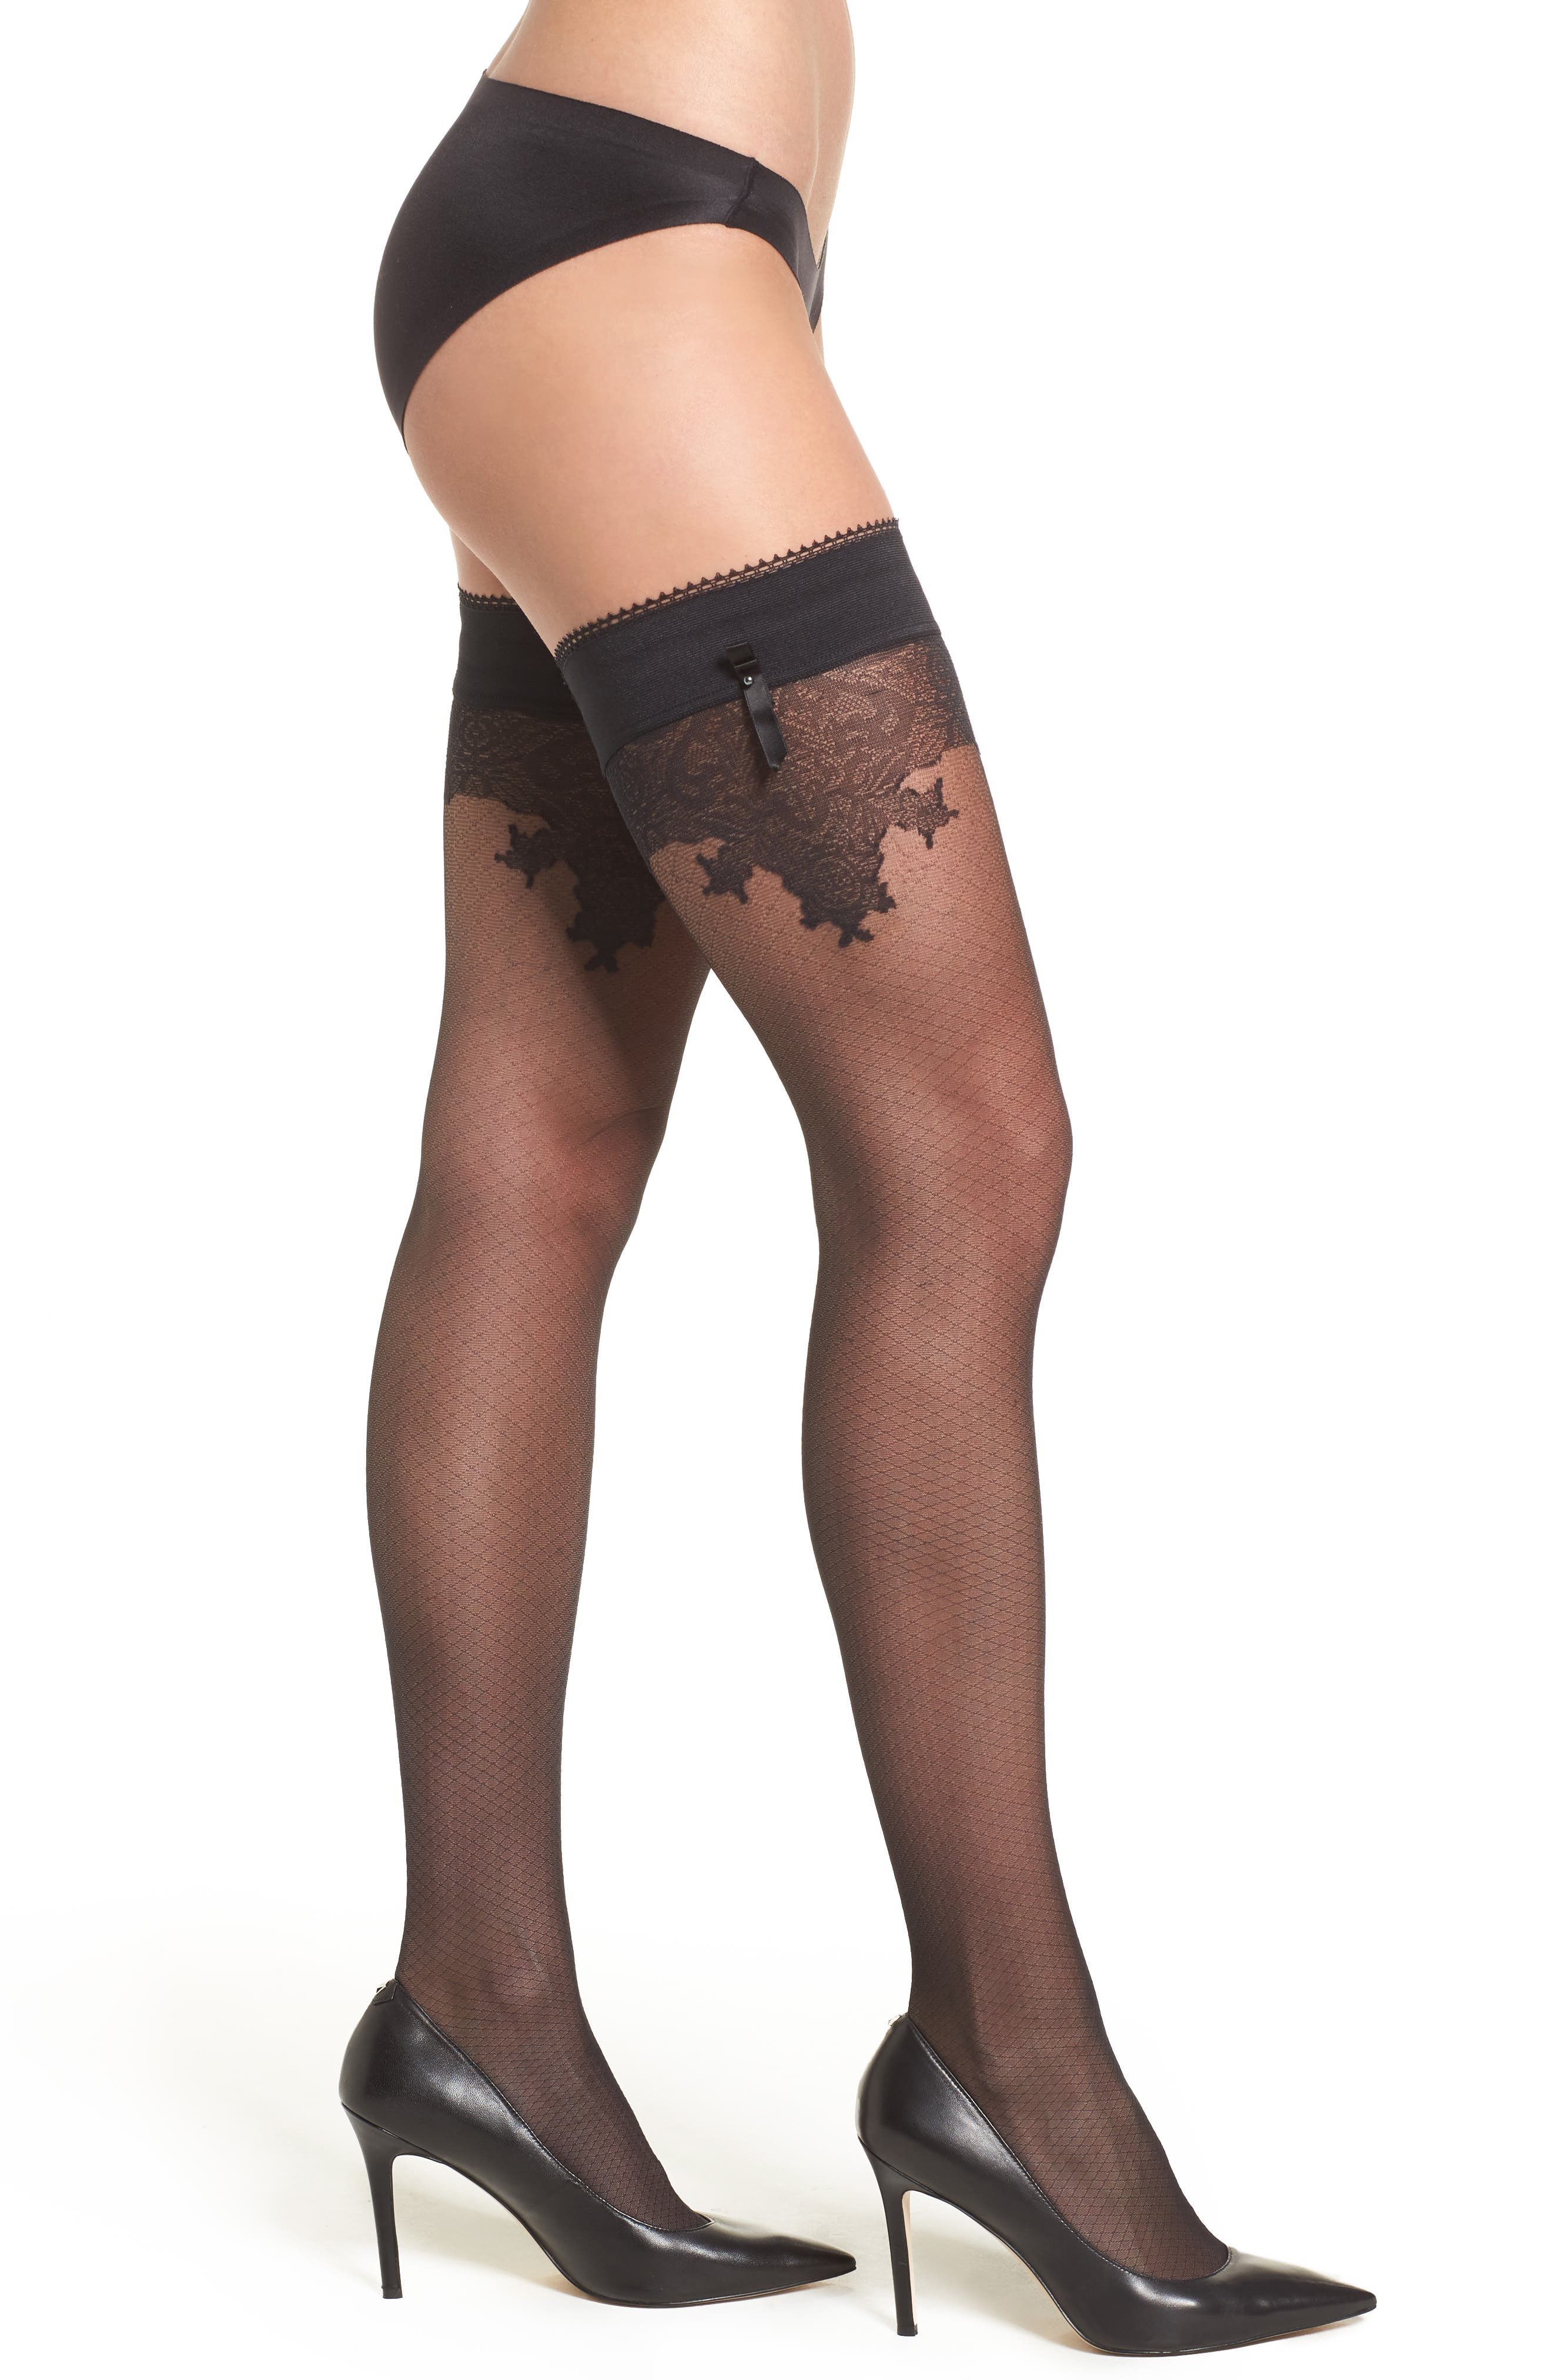 Falke Ceremonial Stay-Up Stockings